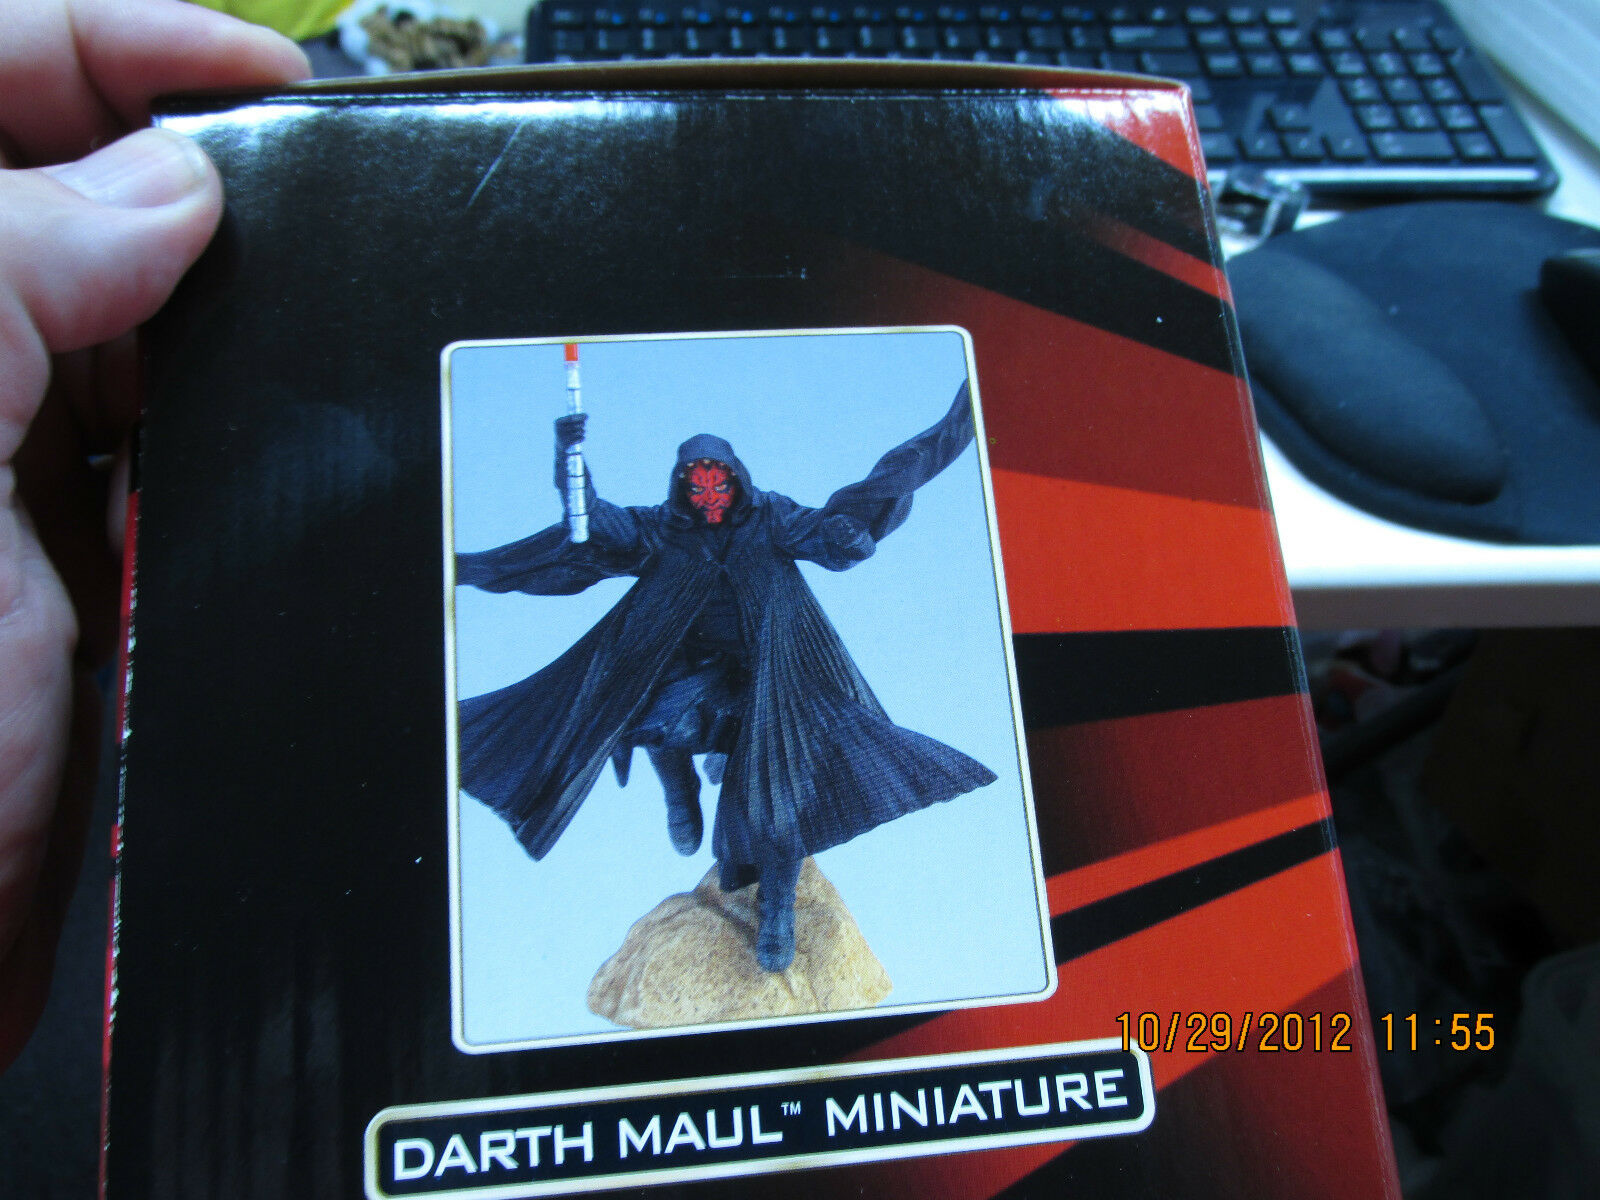 Star Wars Episode Episode Episode I Darth Maul Miniature Figurine By Applause MIB 1f73c1